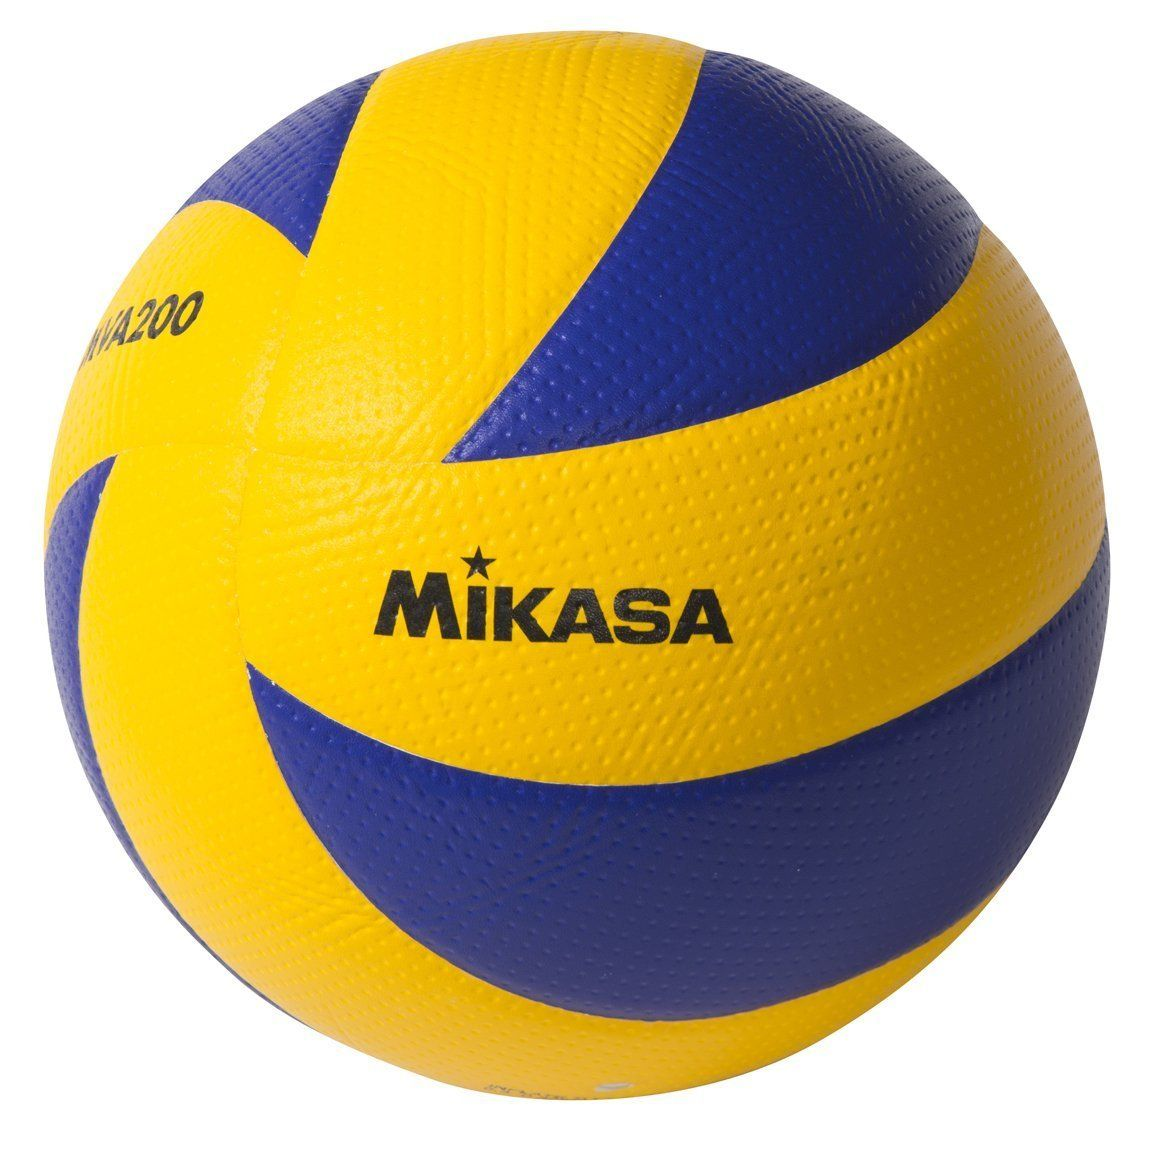 Official Game Ball For The 2008 Beijing 2012 London And 2016 Rio Indoor Olympic Games Sports Fitness Equipmen Mikasa Volleyball Workouts Olympic Games